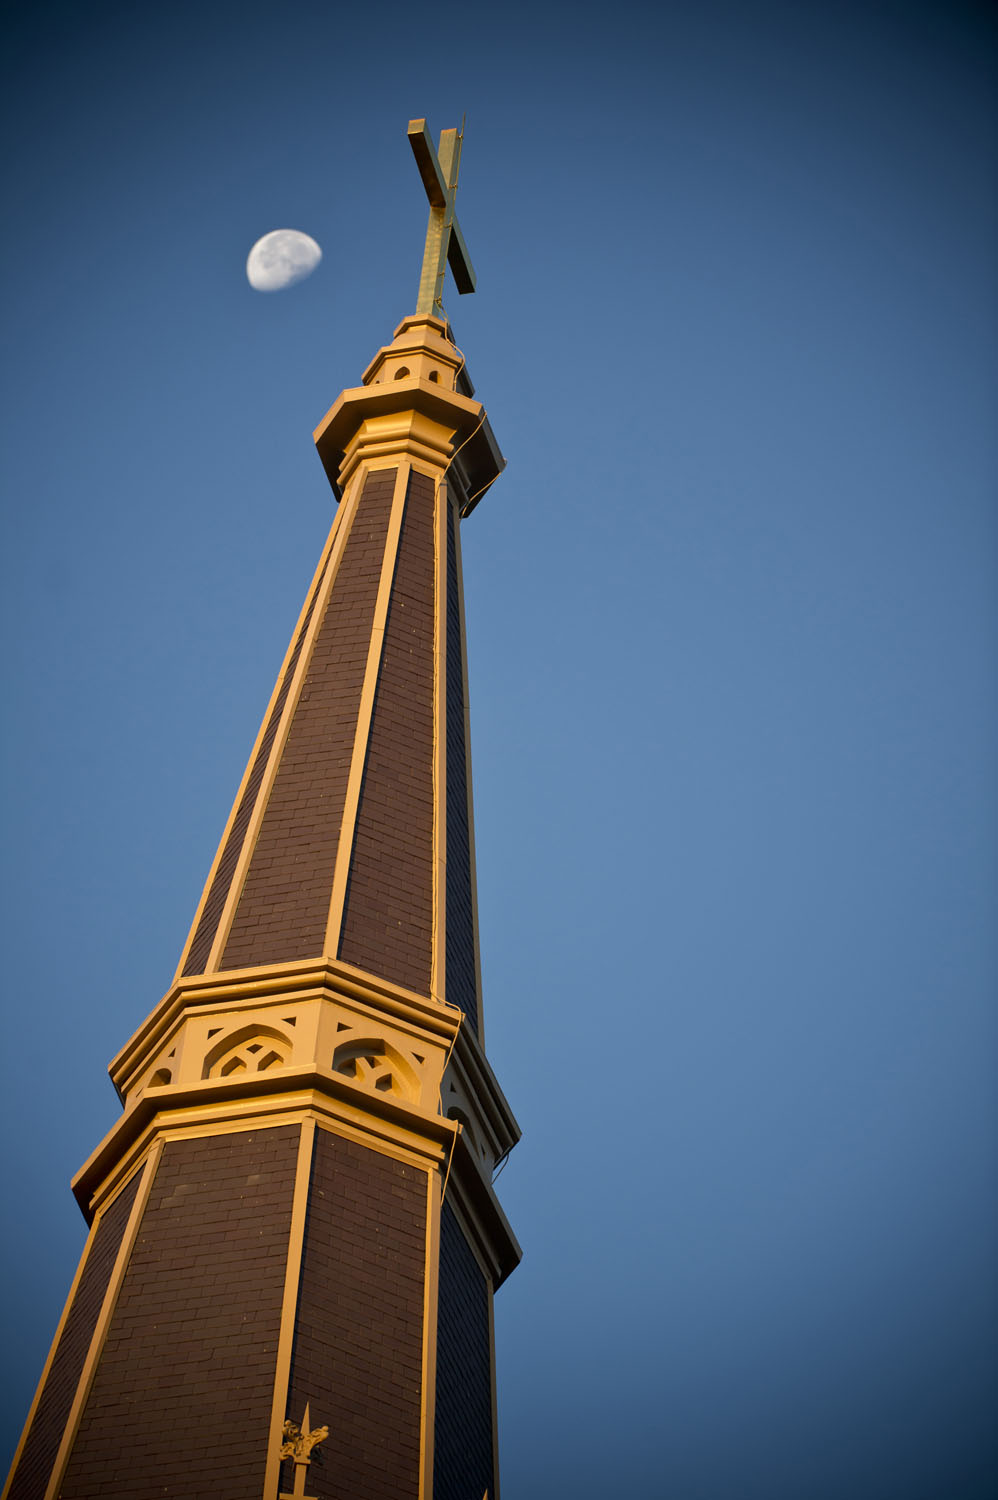 Steeple of the Basilica of the Sacred Heart at sunrise